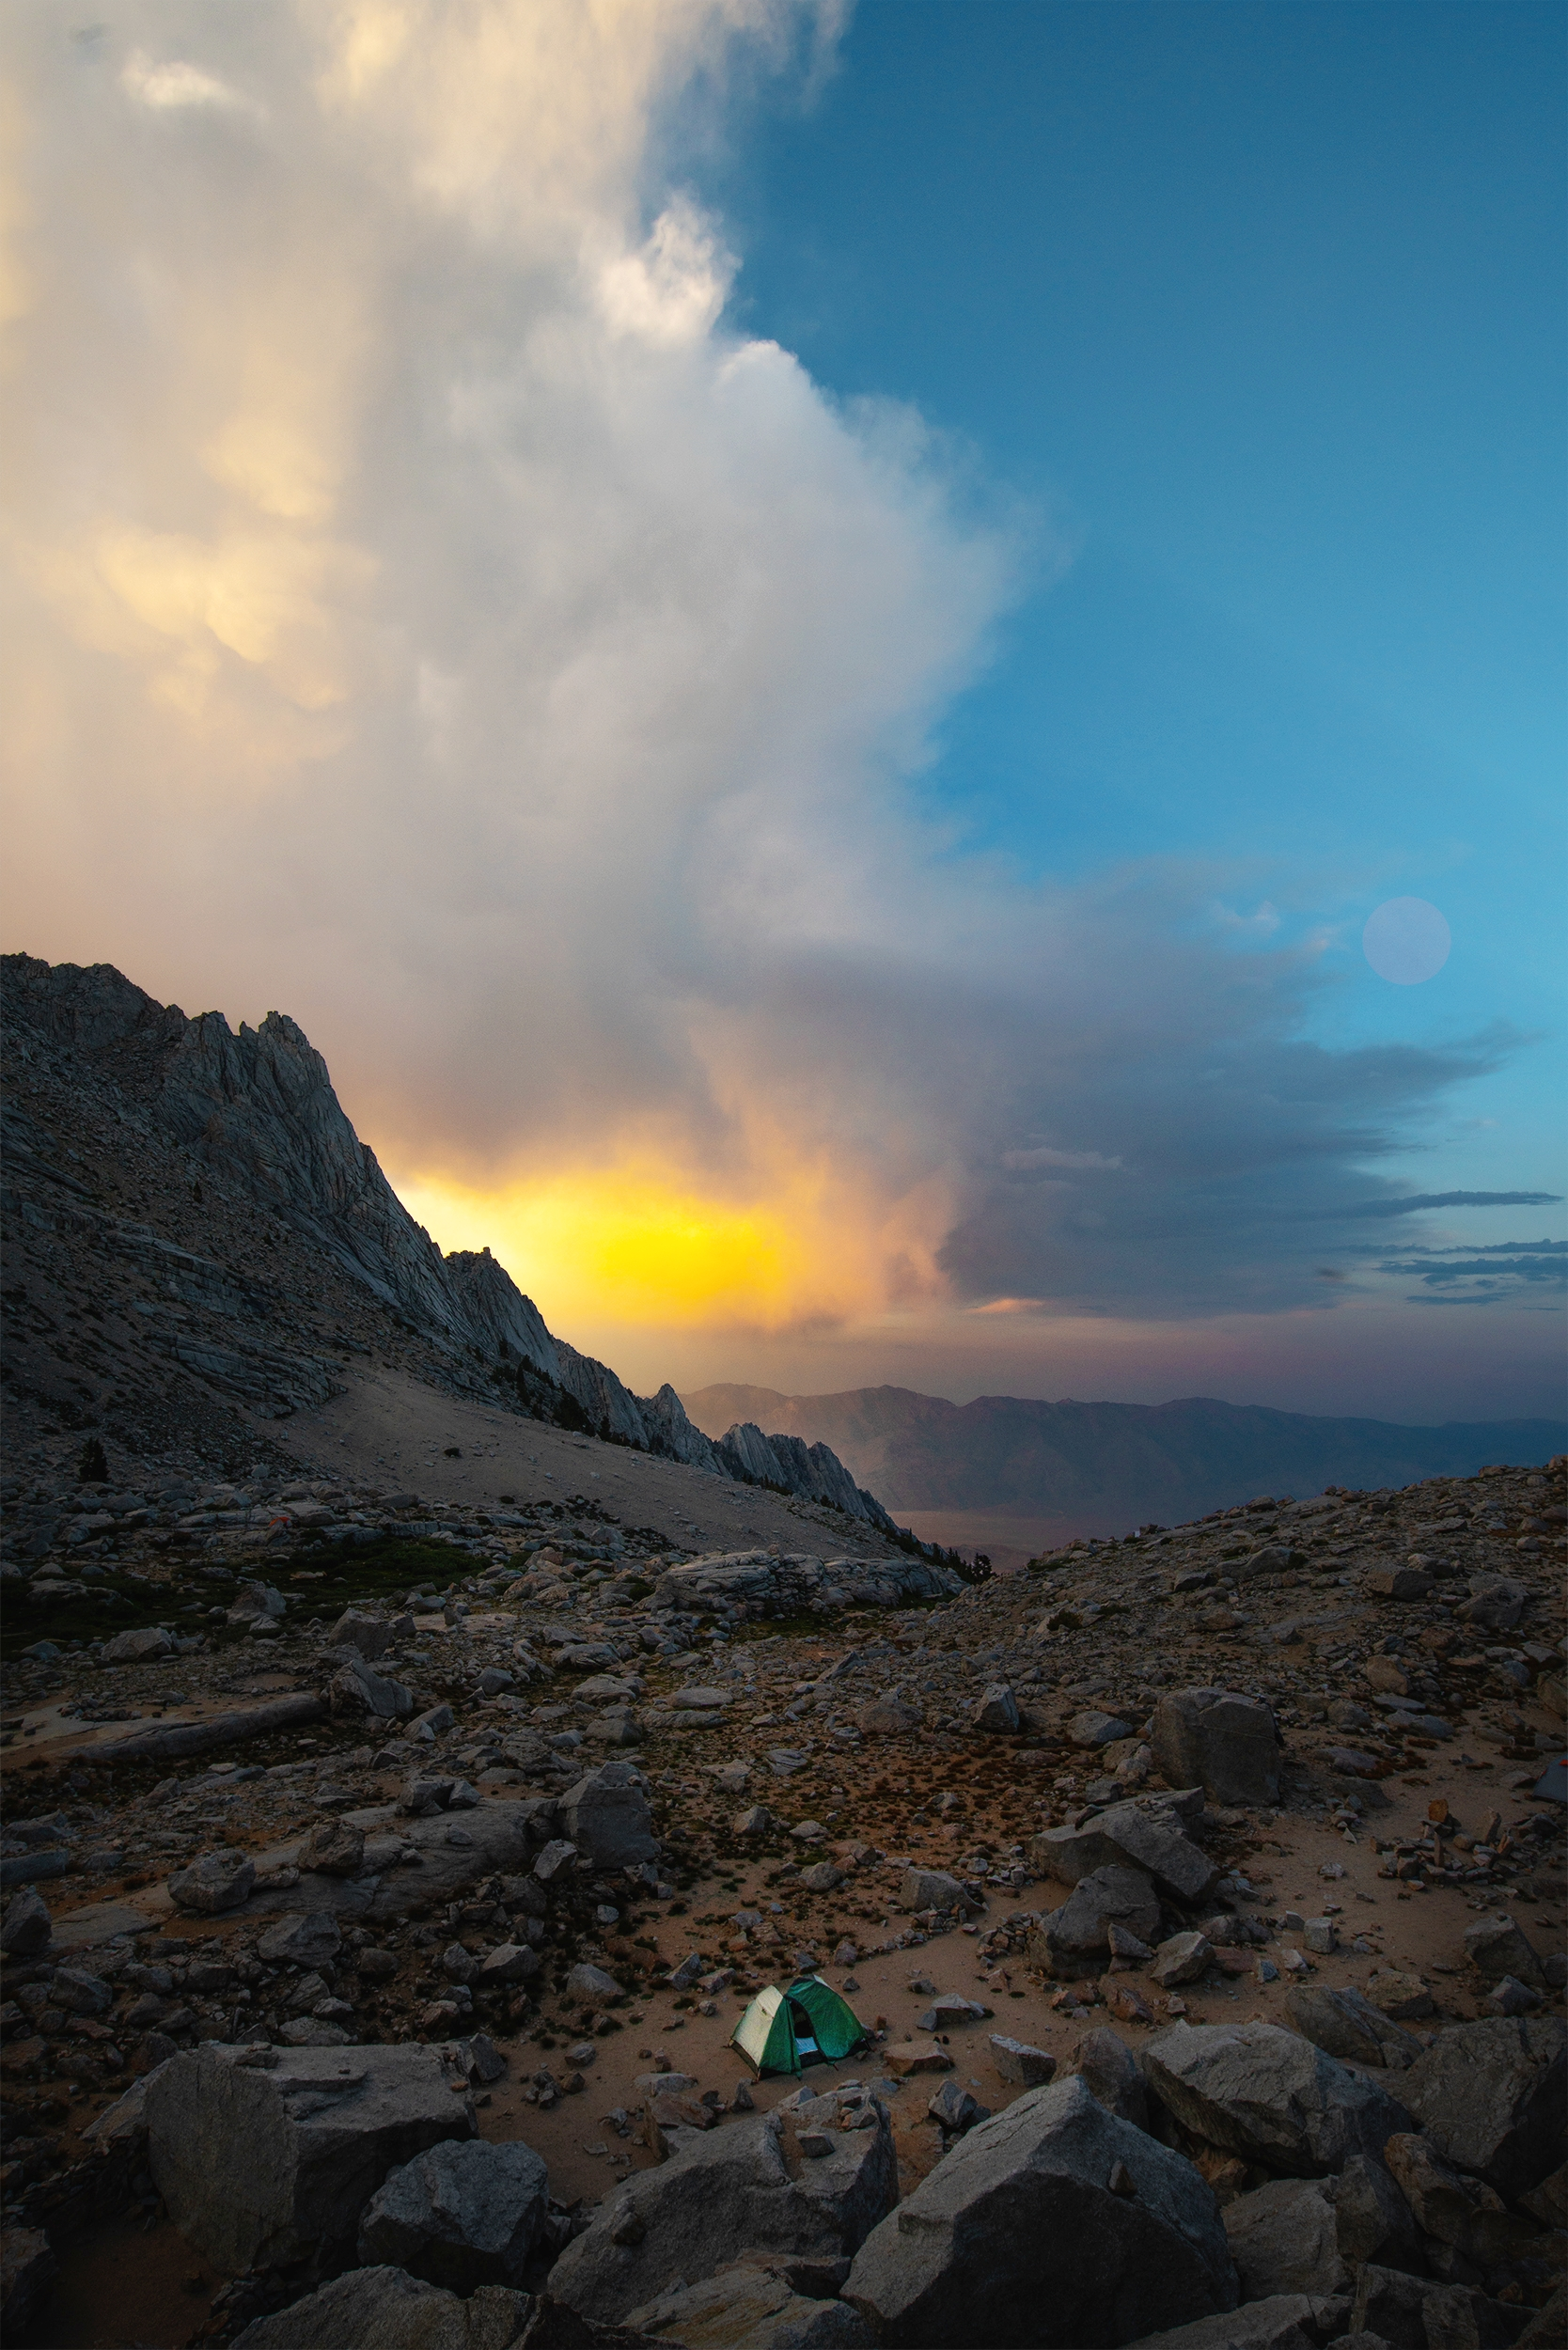 A Tent and the Sunset Storm